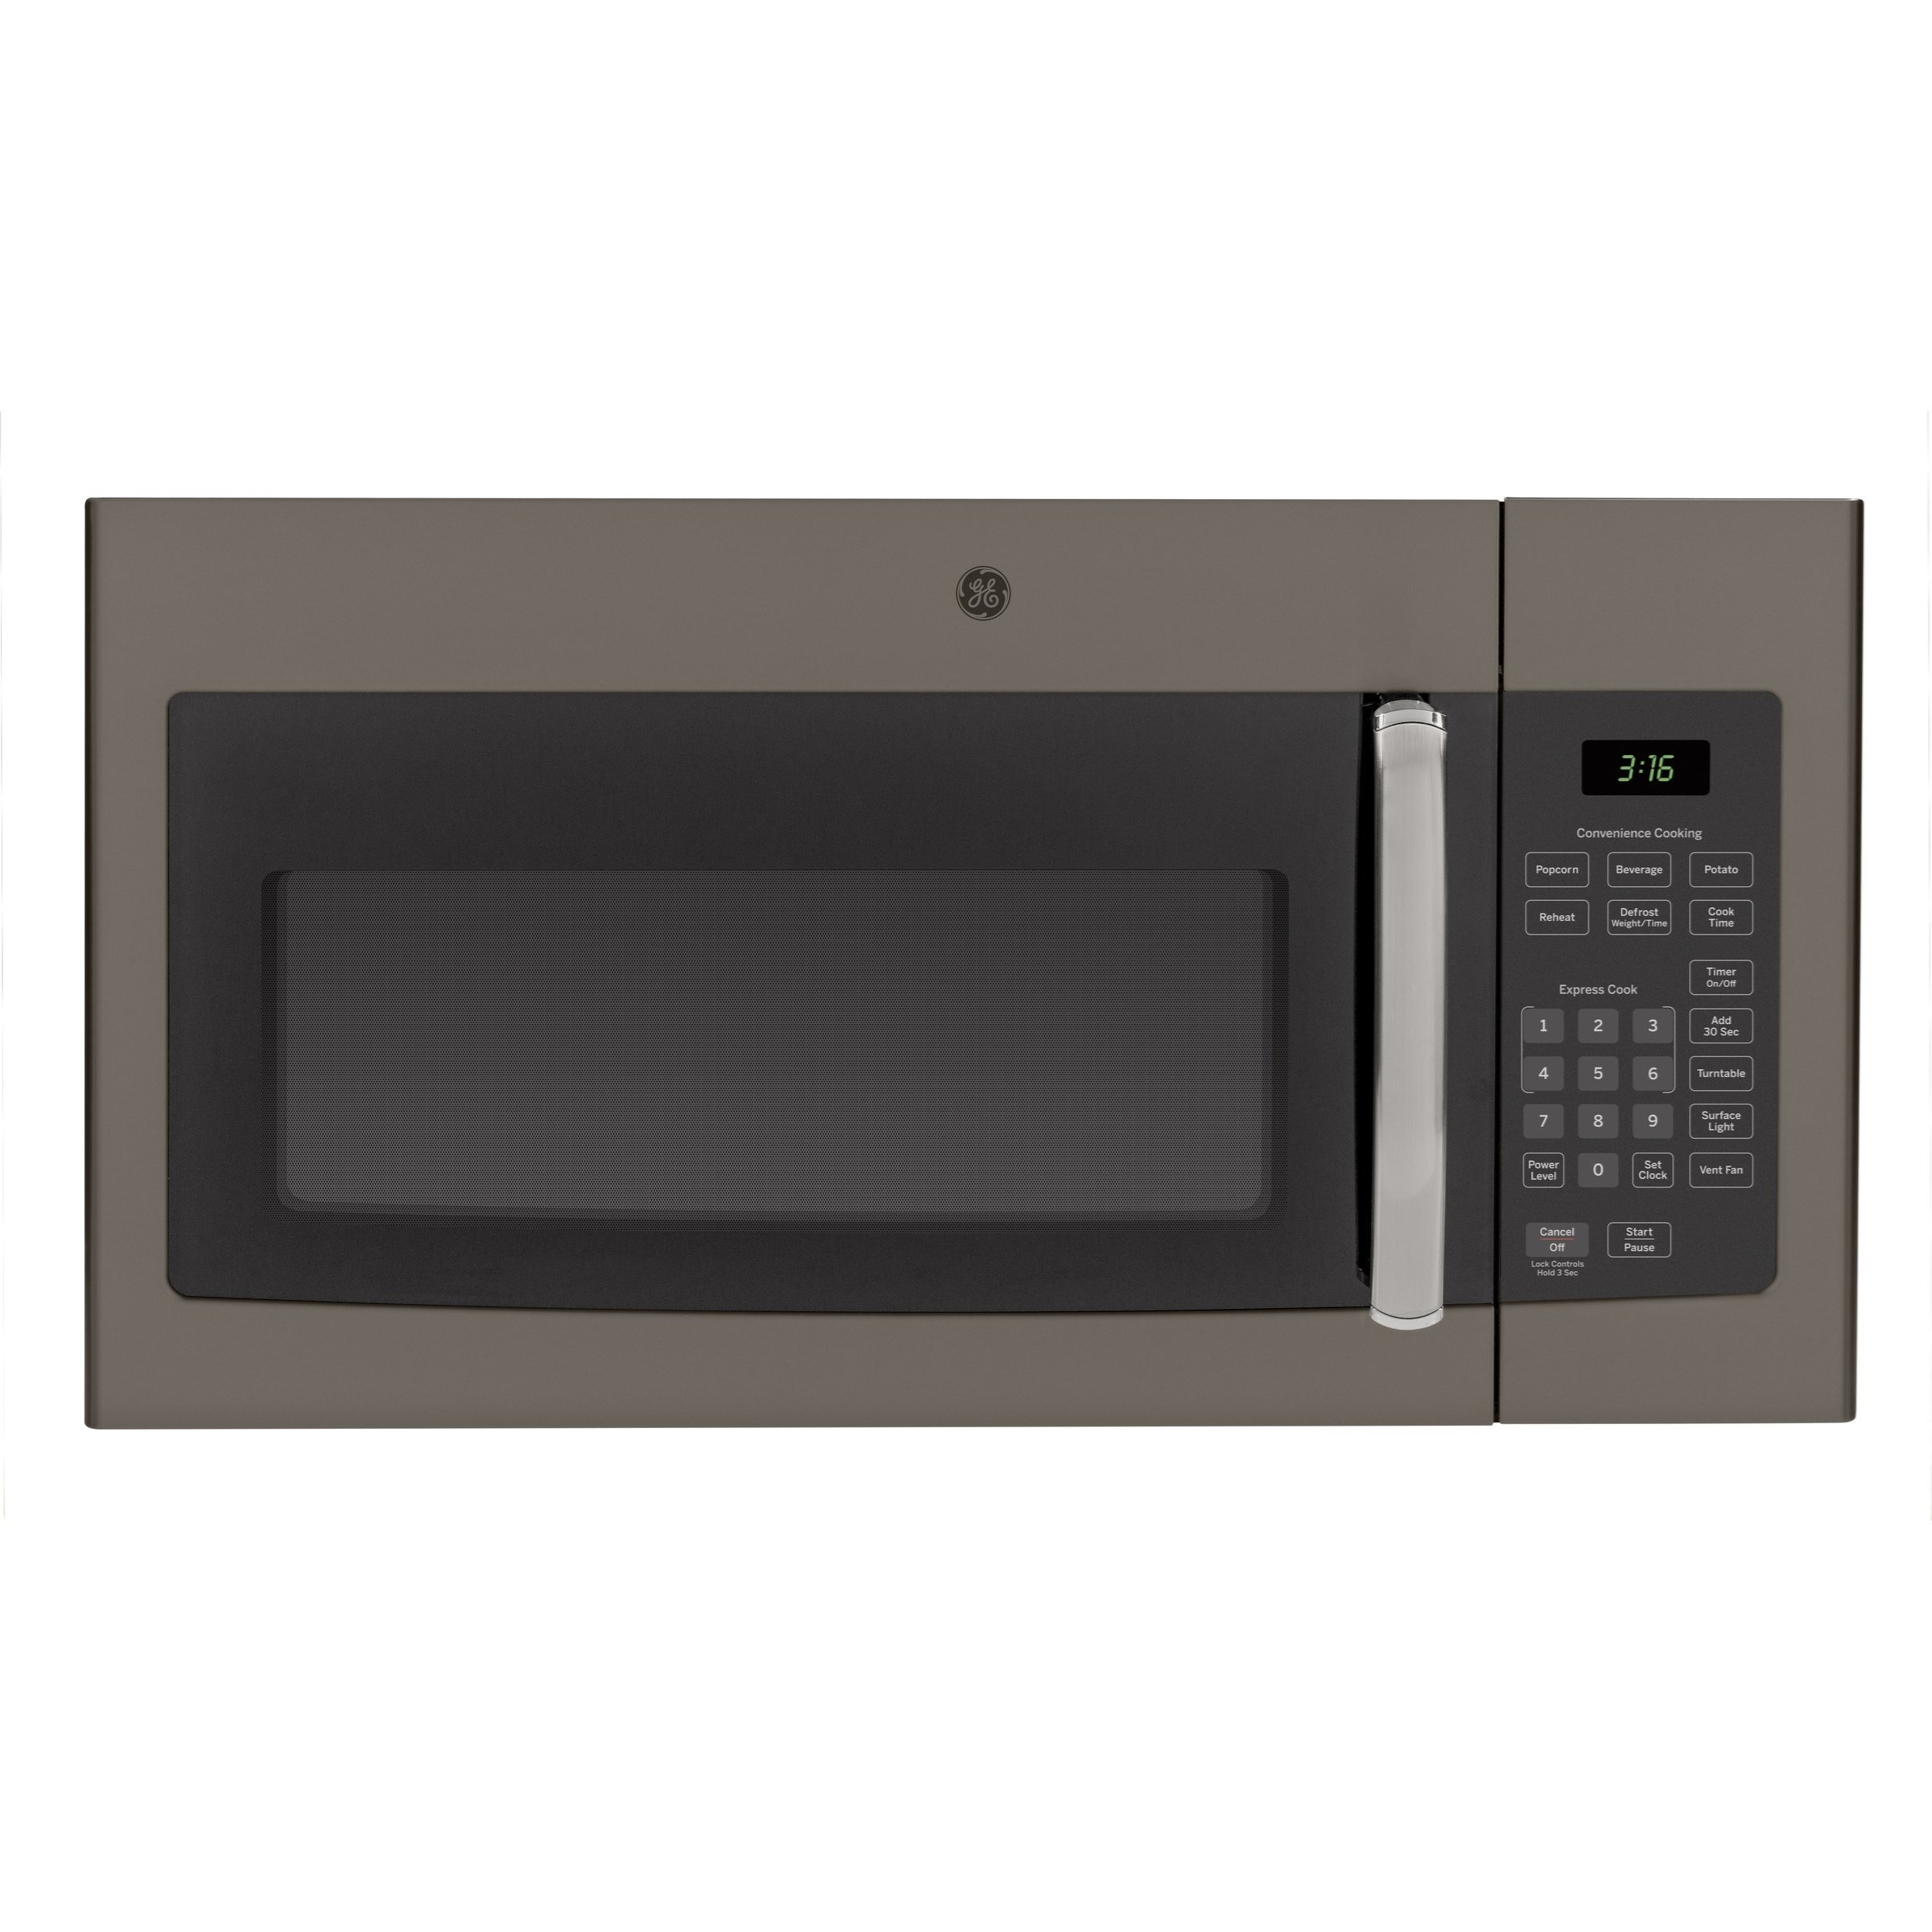 Microwaves 1.6 Cu. Ft. Over-the-Range Microwave Oven by GE Appliances at Furniture and ApplianceMart